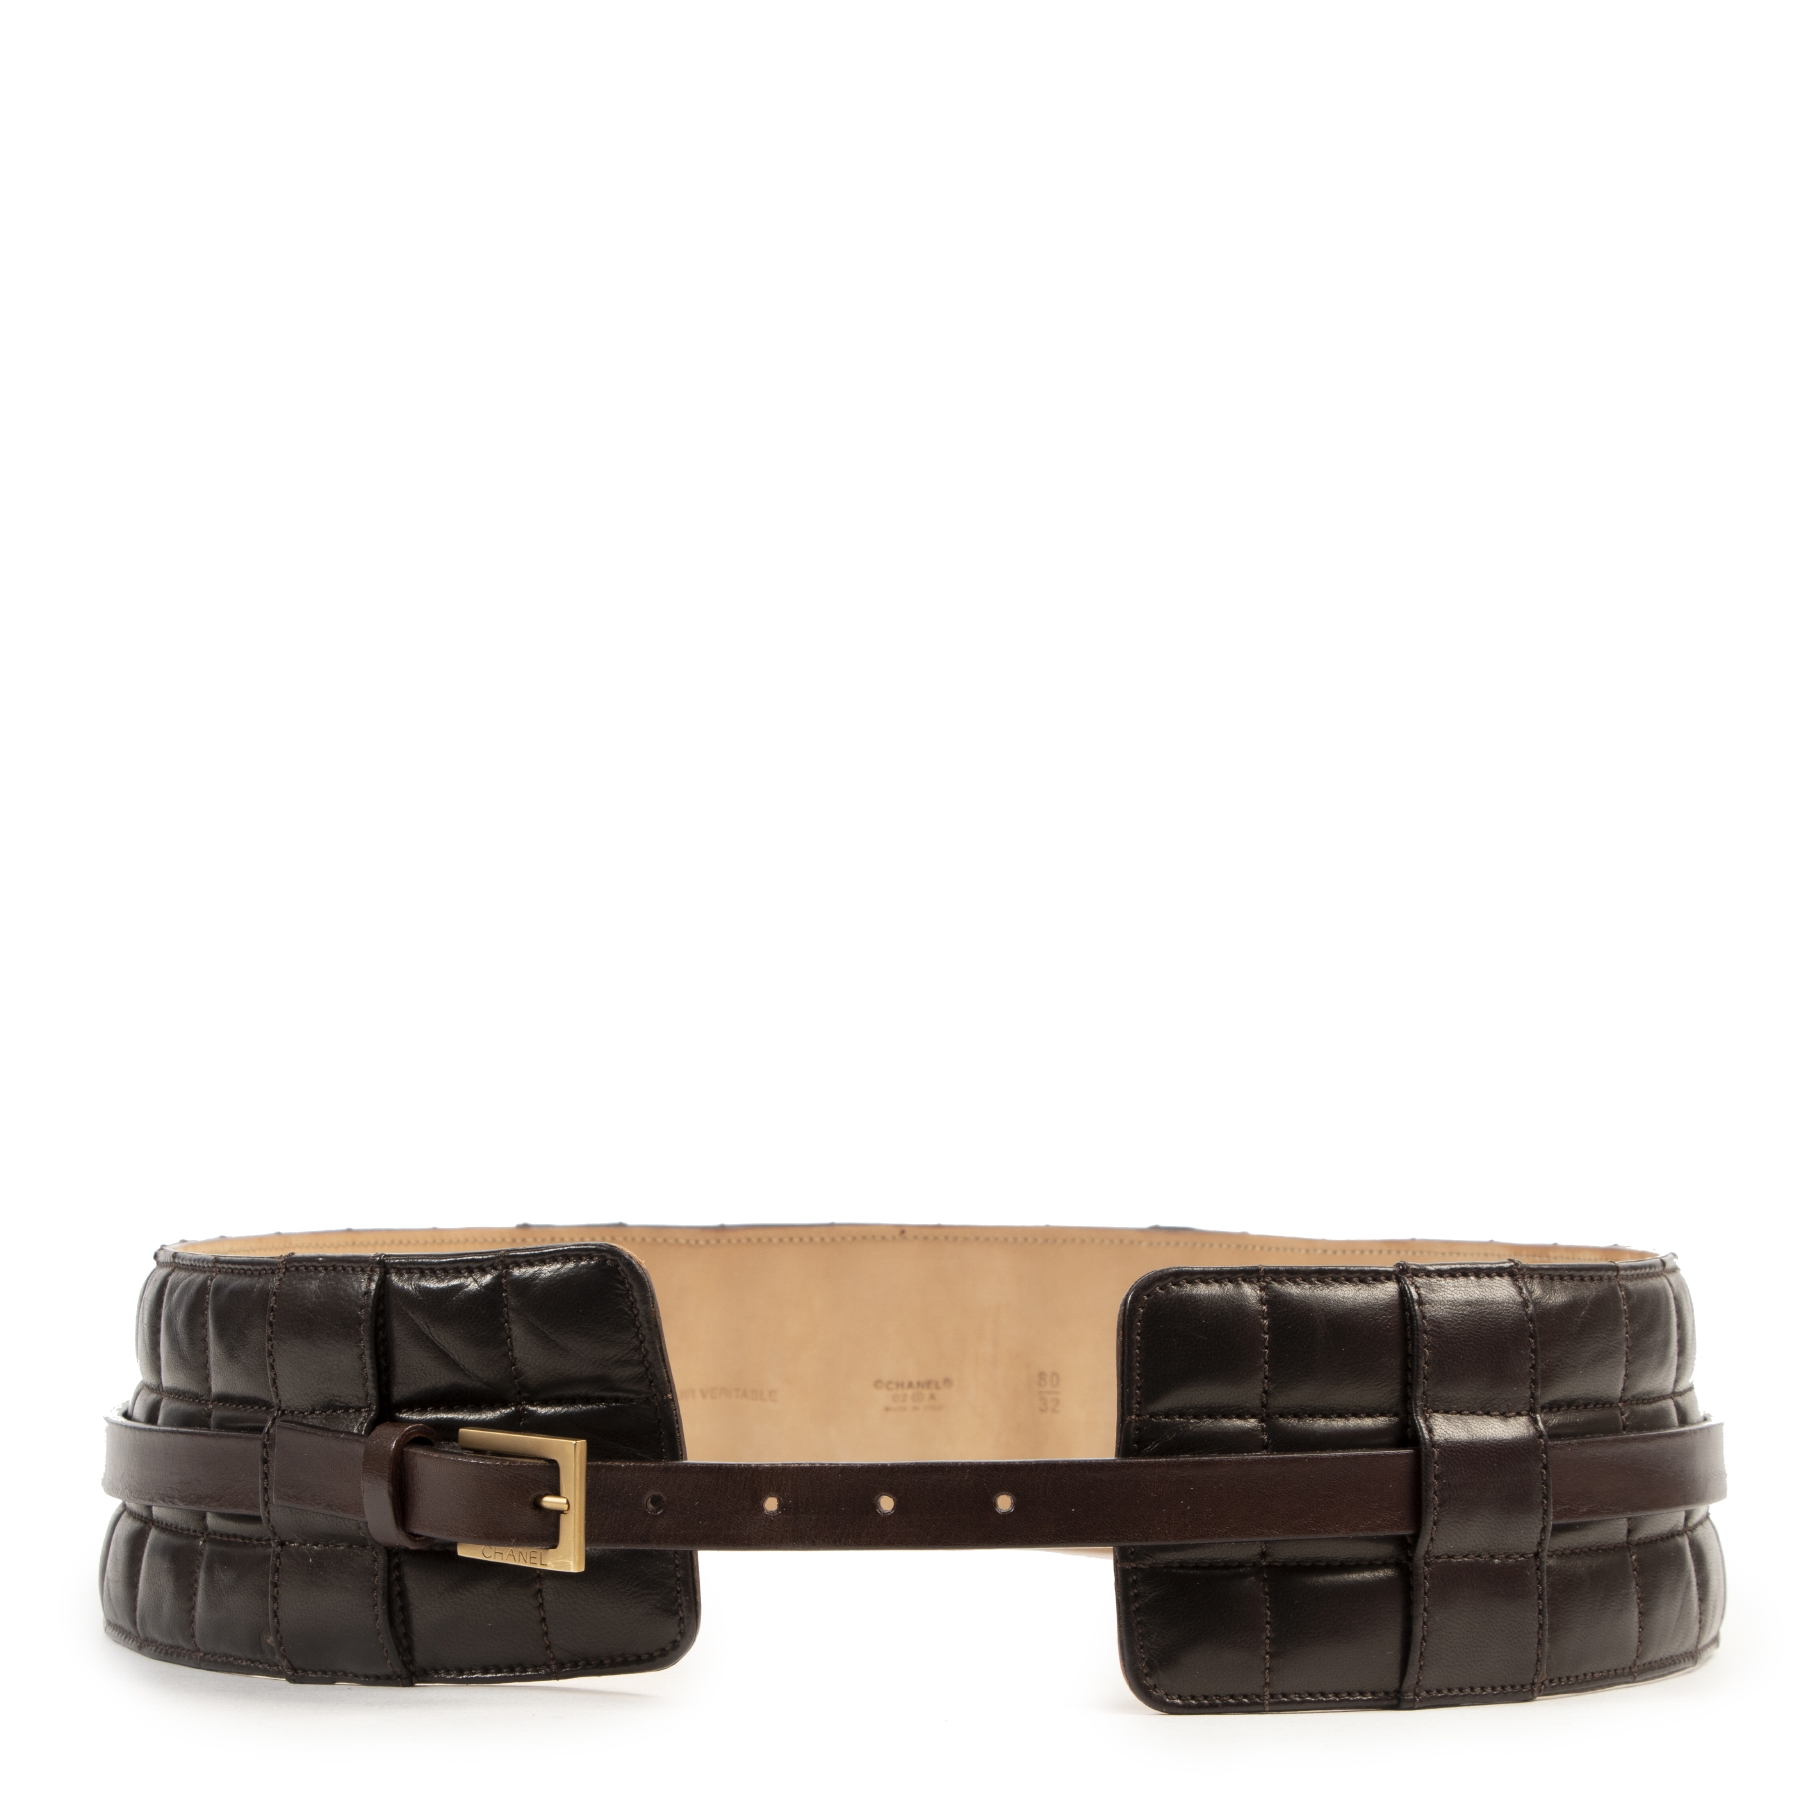 Chanel Brown Matelasse Waist Belt - size 80